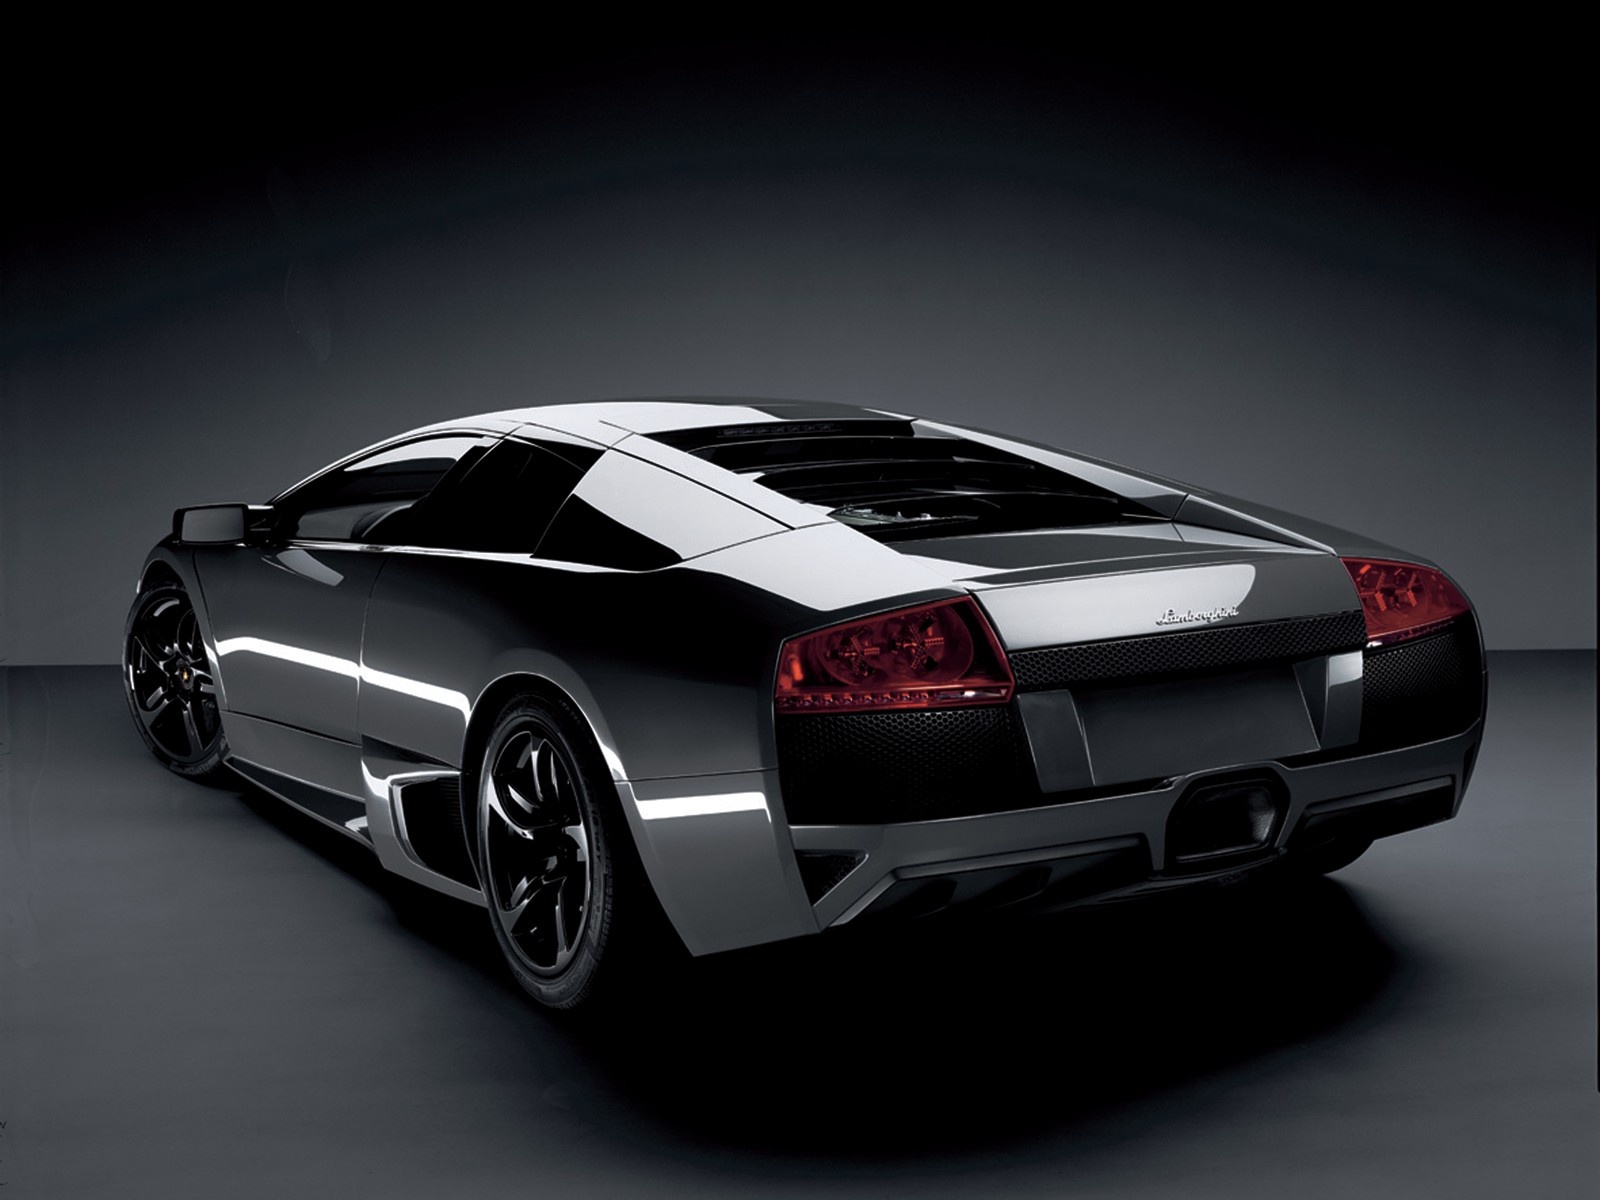 Fast Auto Lamborghini Murcielago Cool Wallpapers Hd